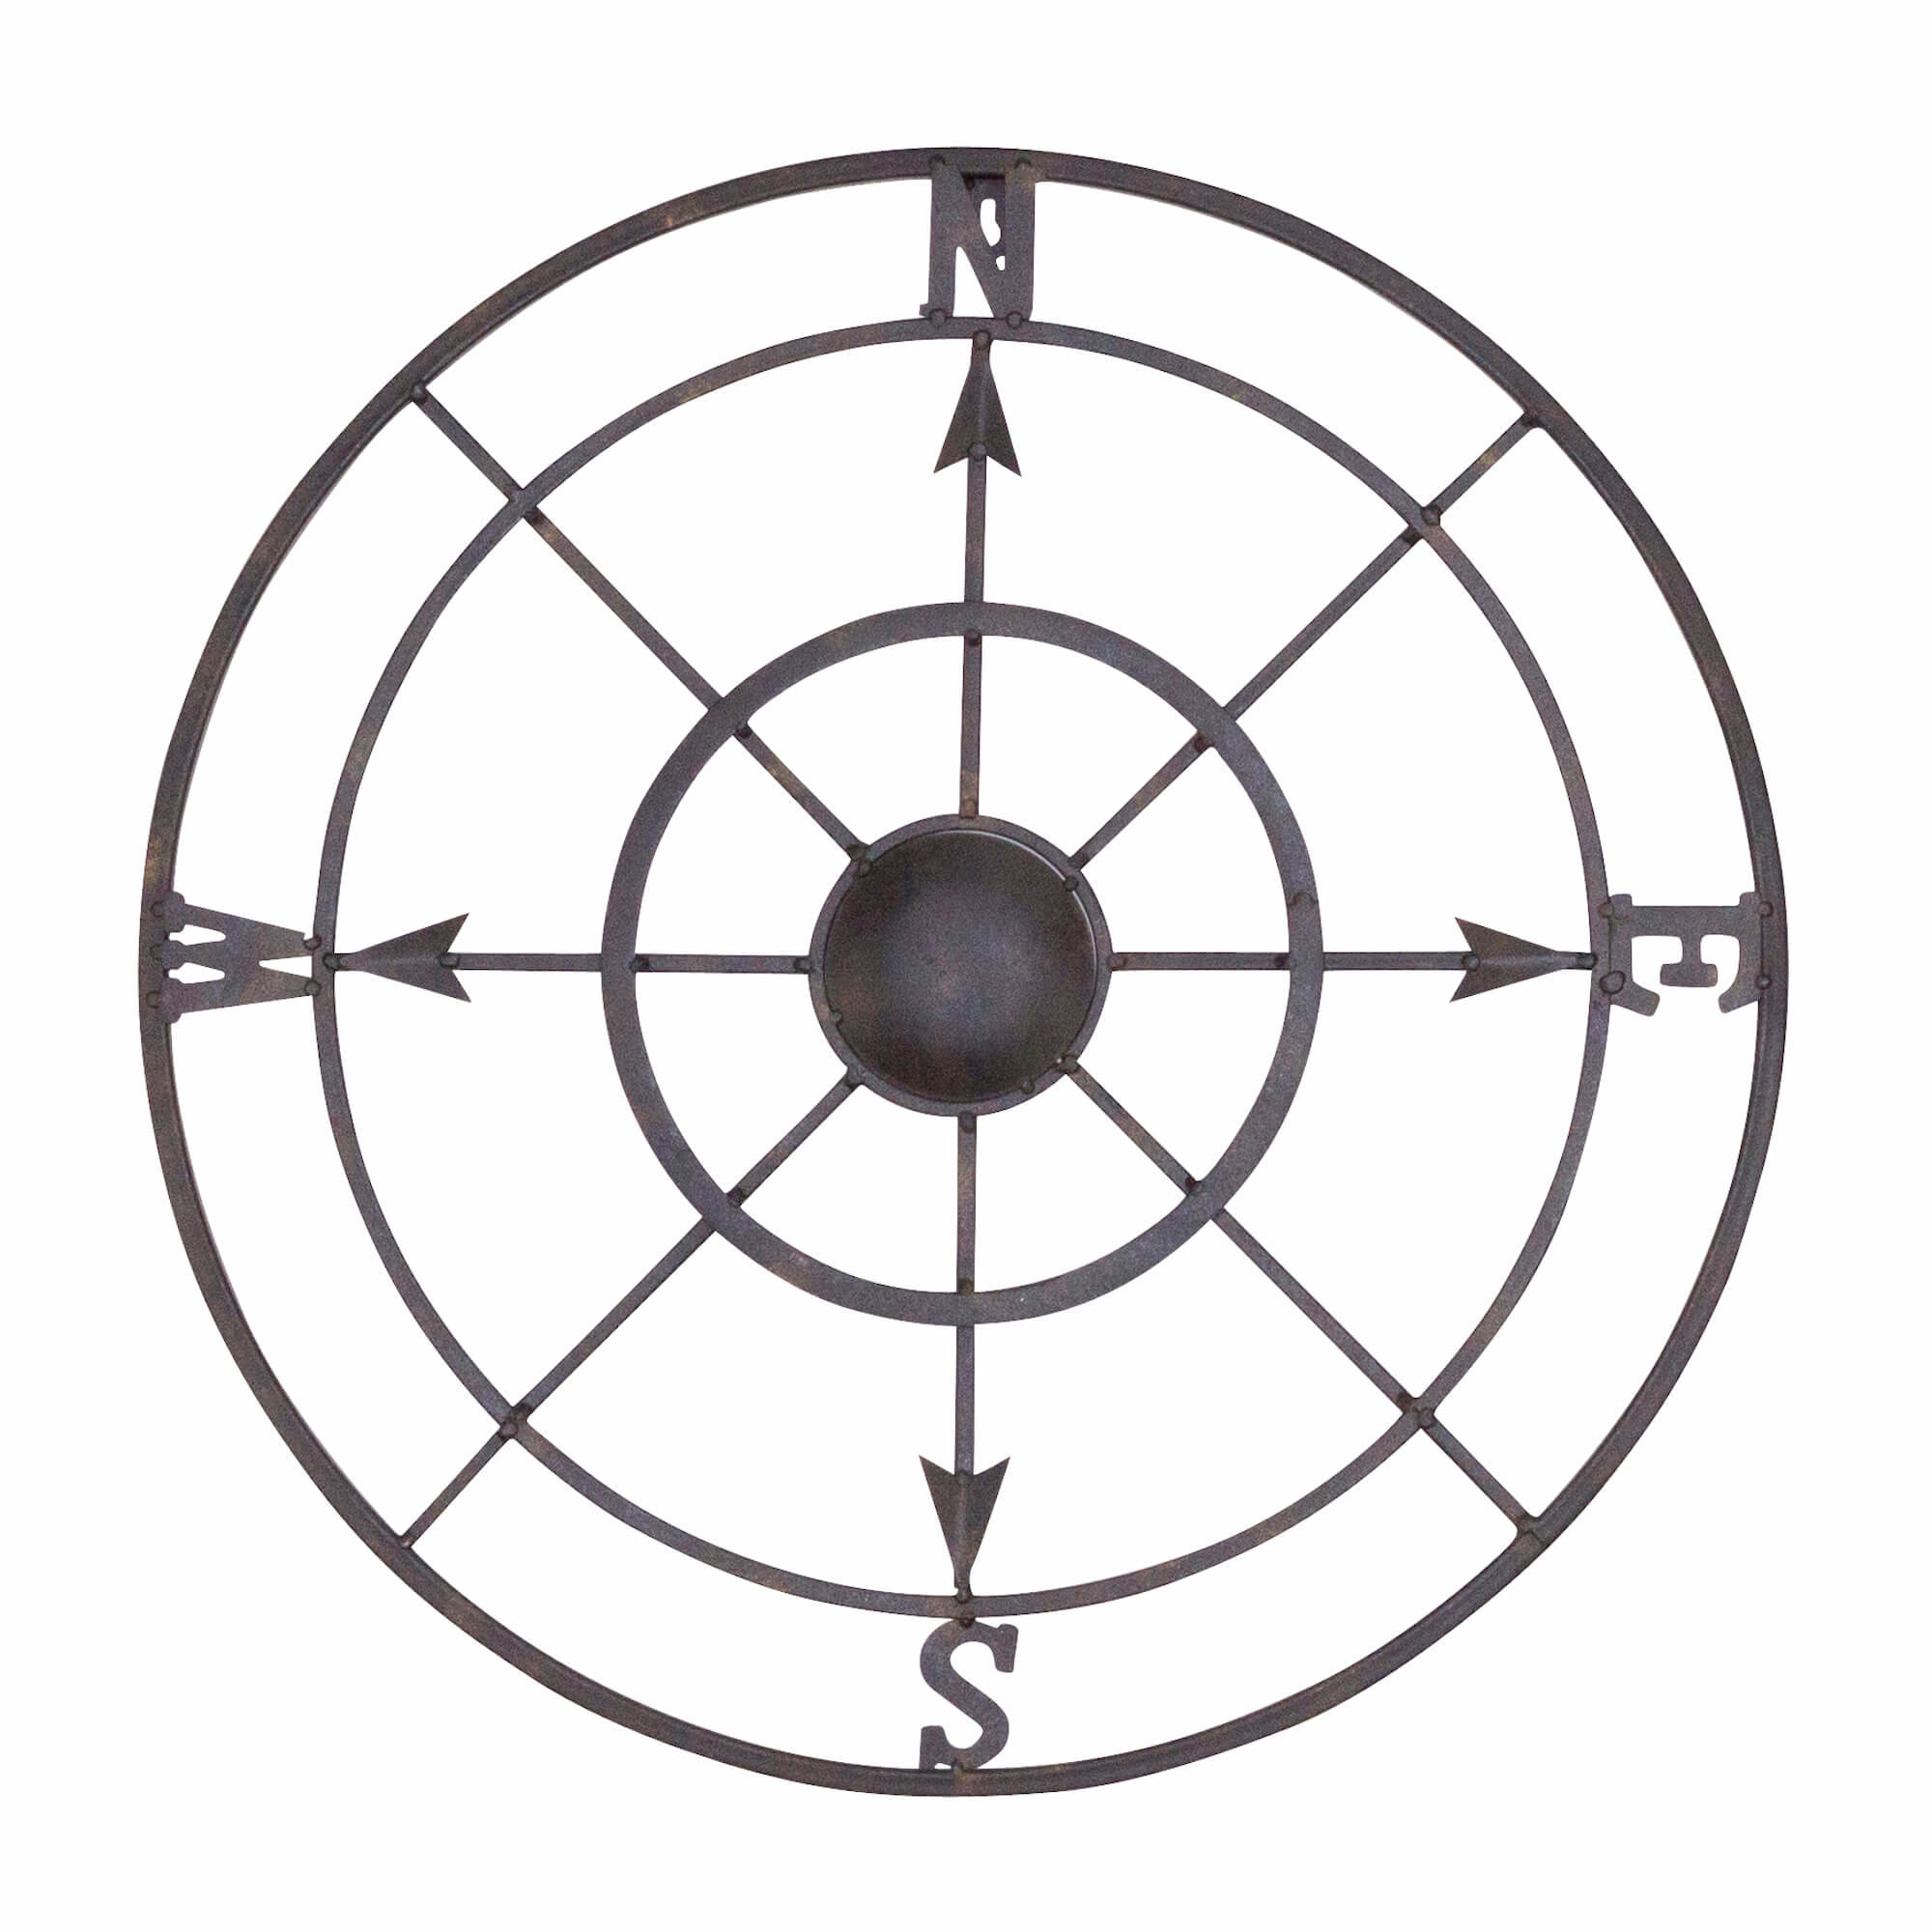 Compass Rose Wall Art | Wayfair pertaining to Round Compass Wall Decor (Image 7 of 30)